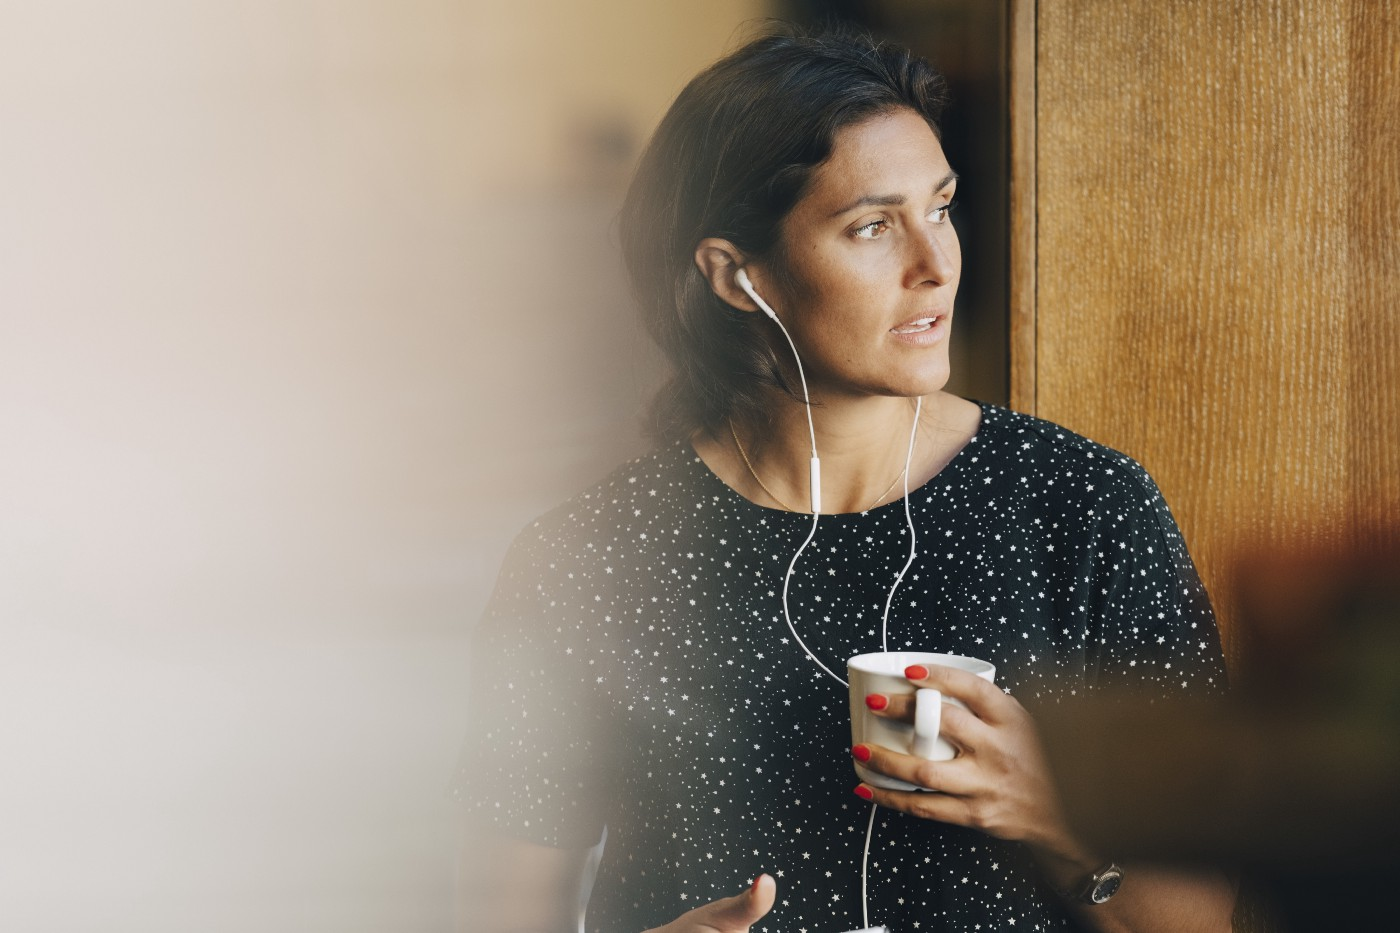 A businesswoman holding a coffee cup while talking on earphones in office